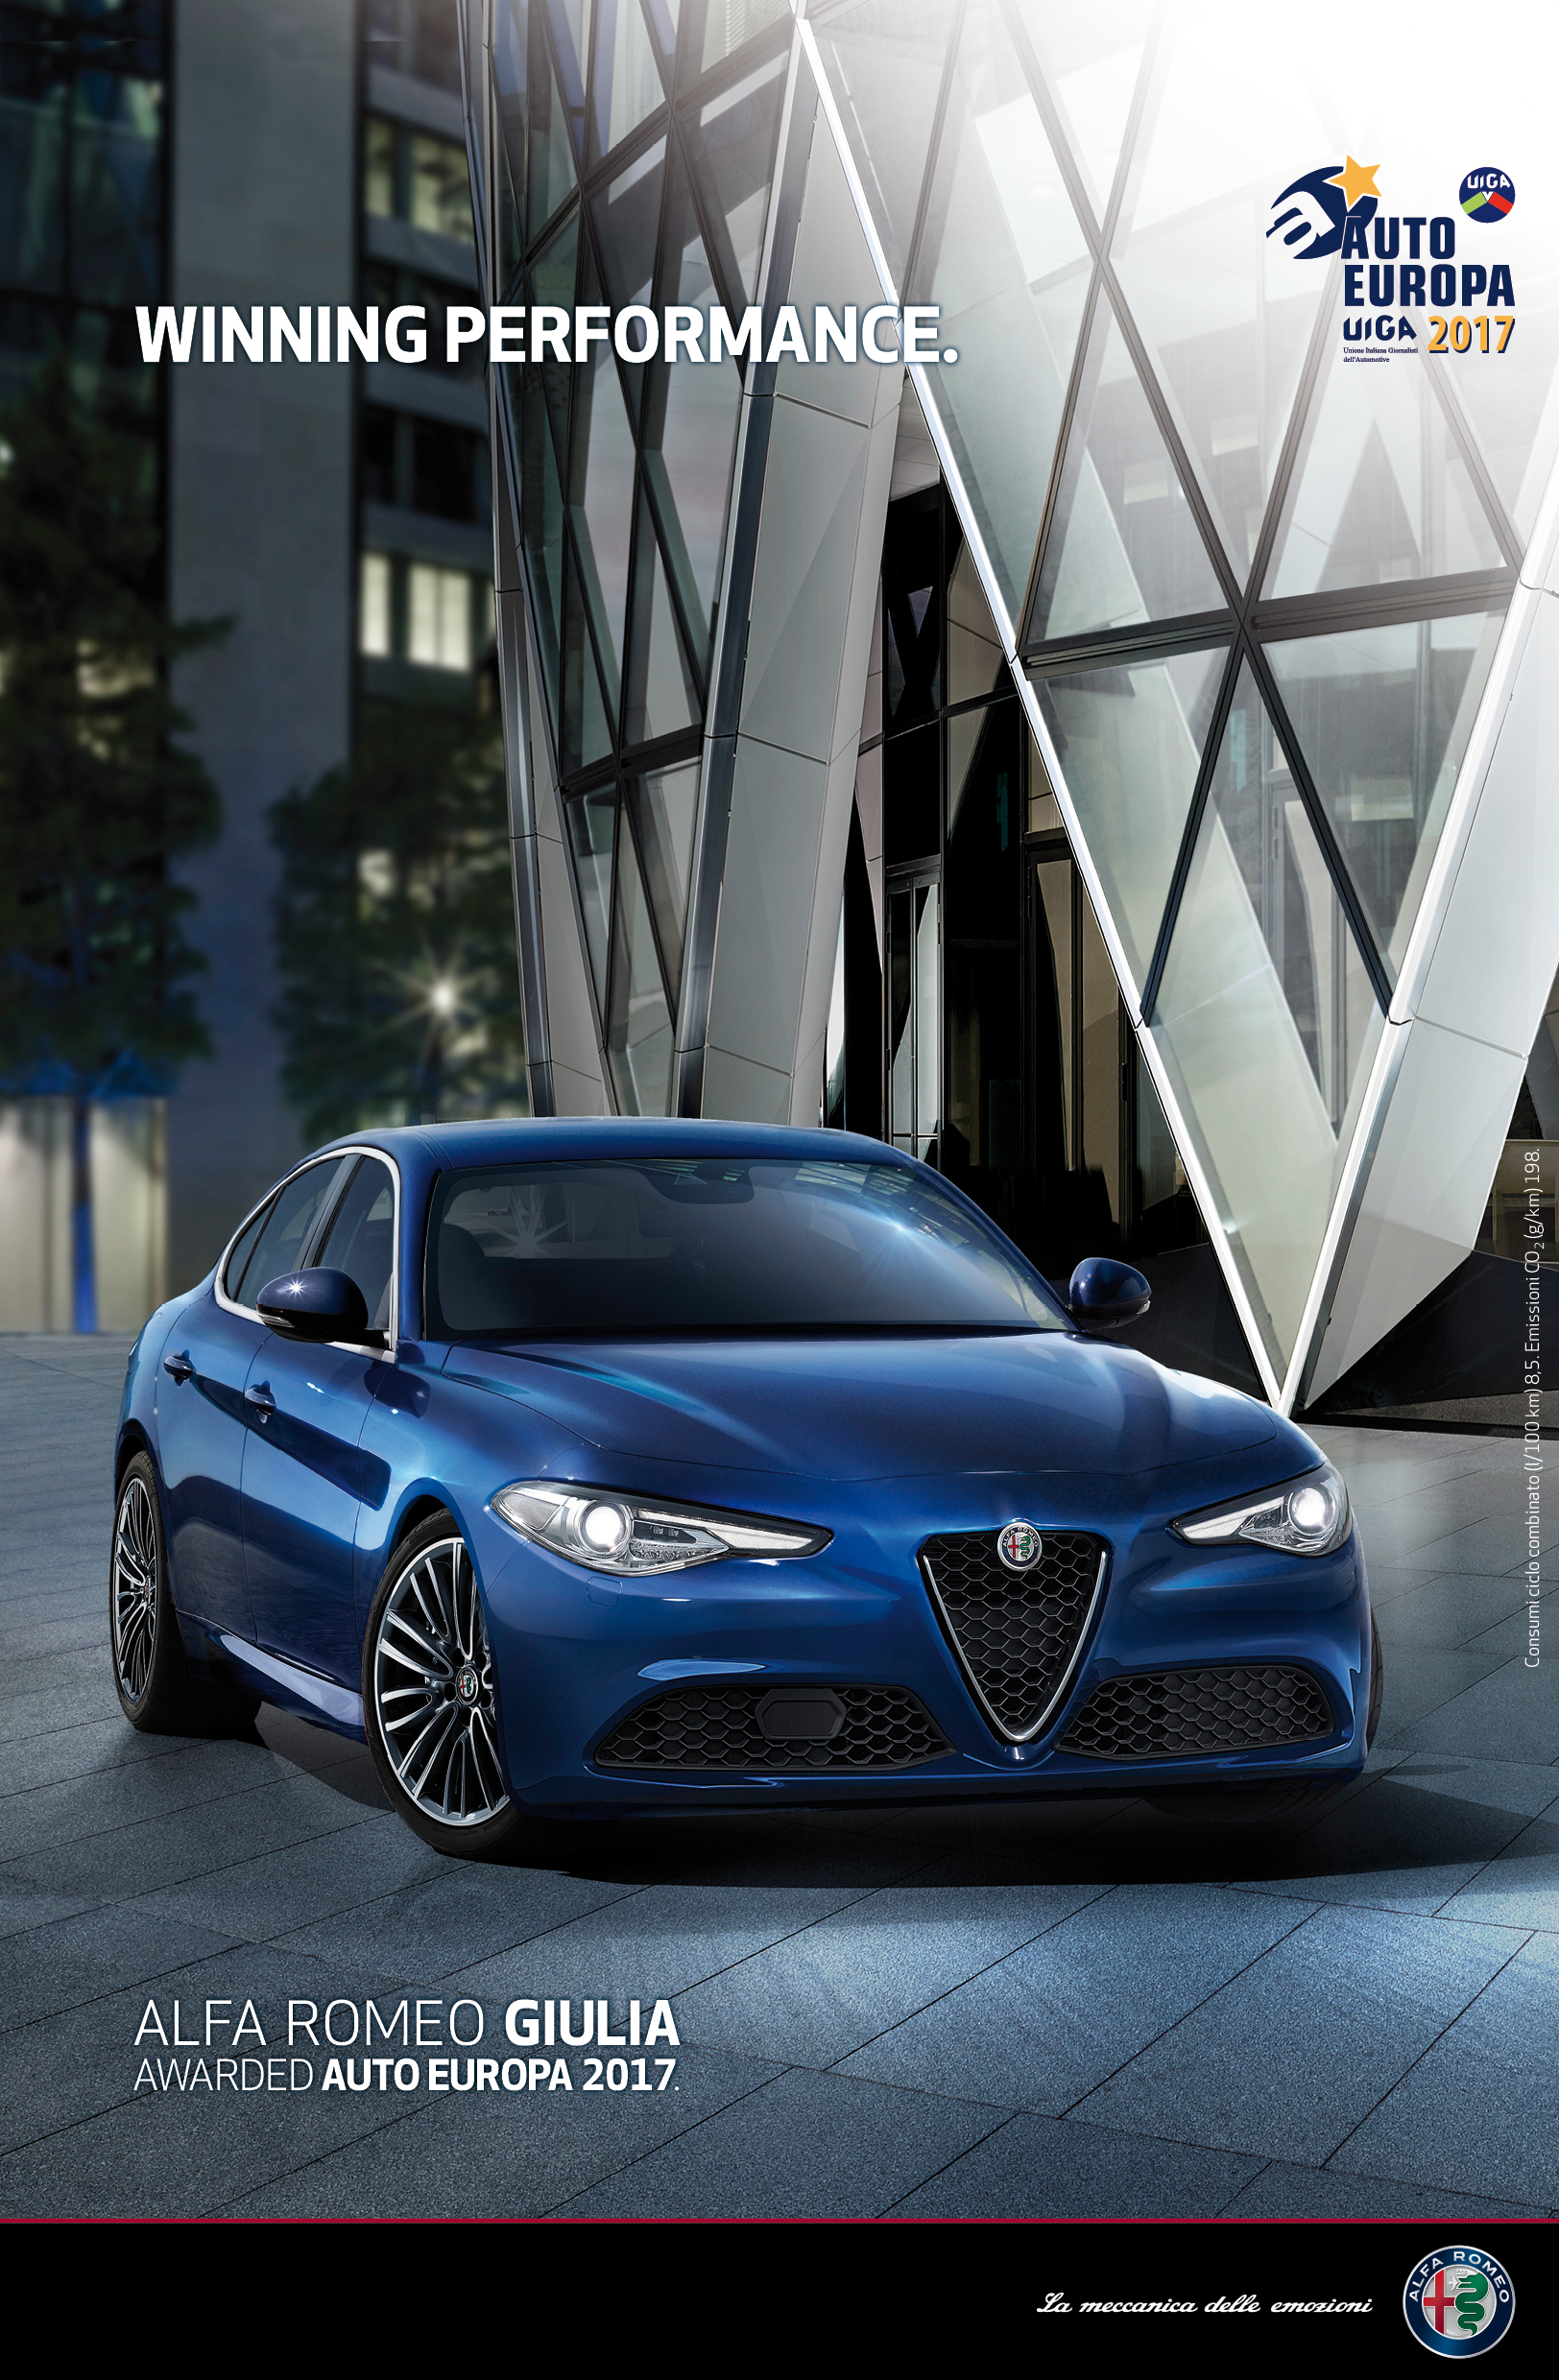 l alfa romeo giulia remporte le titre auto europa 2017 communiqu s de presse fiat. Black Bedroom Furniture Sets. Home Design Ideas